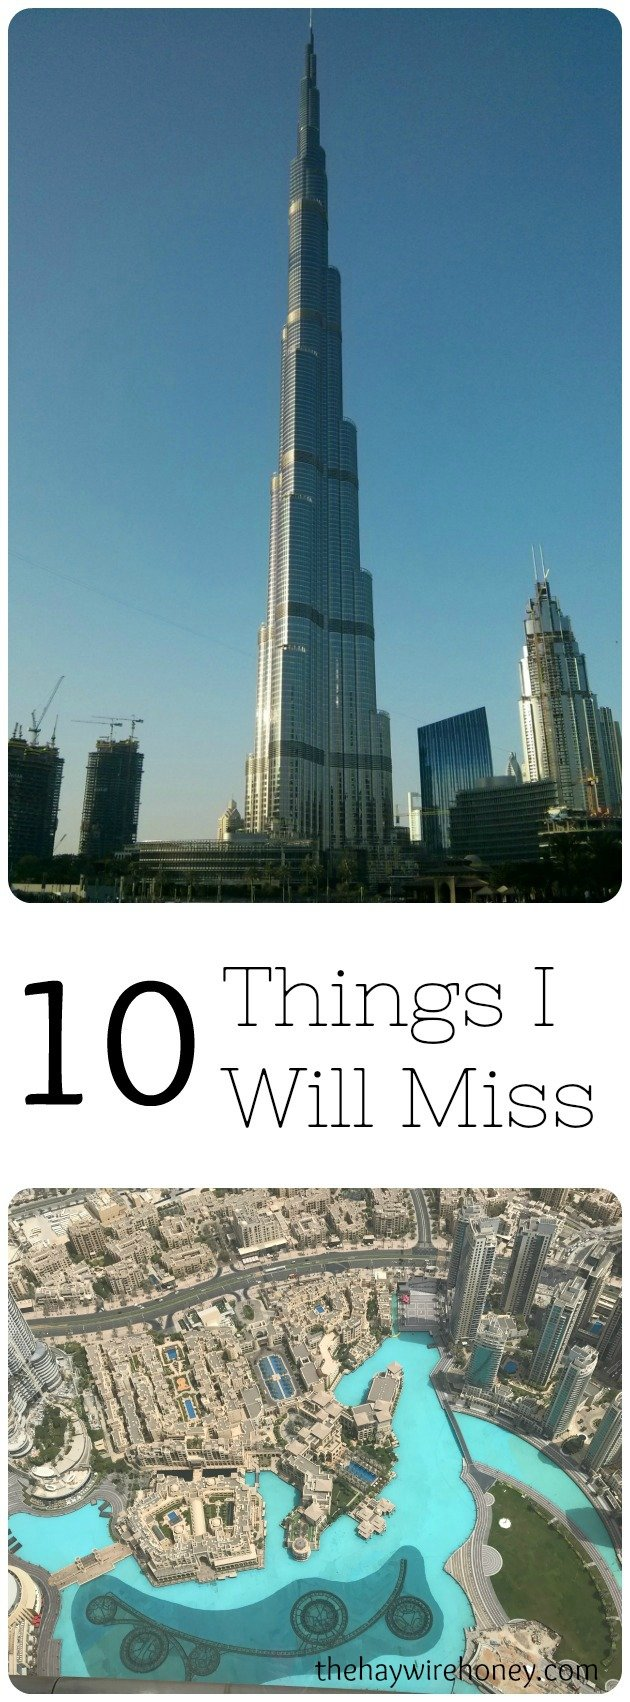 10-things-youll-love-about-dubai